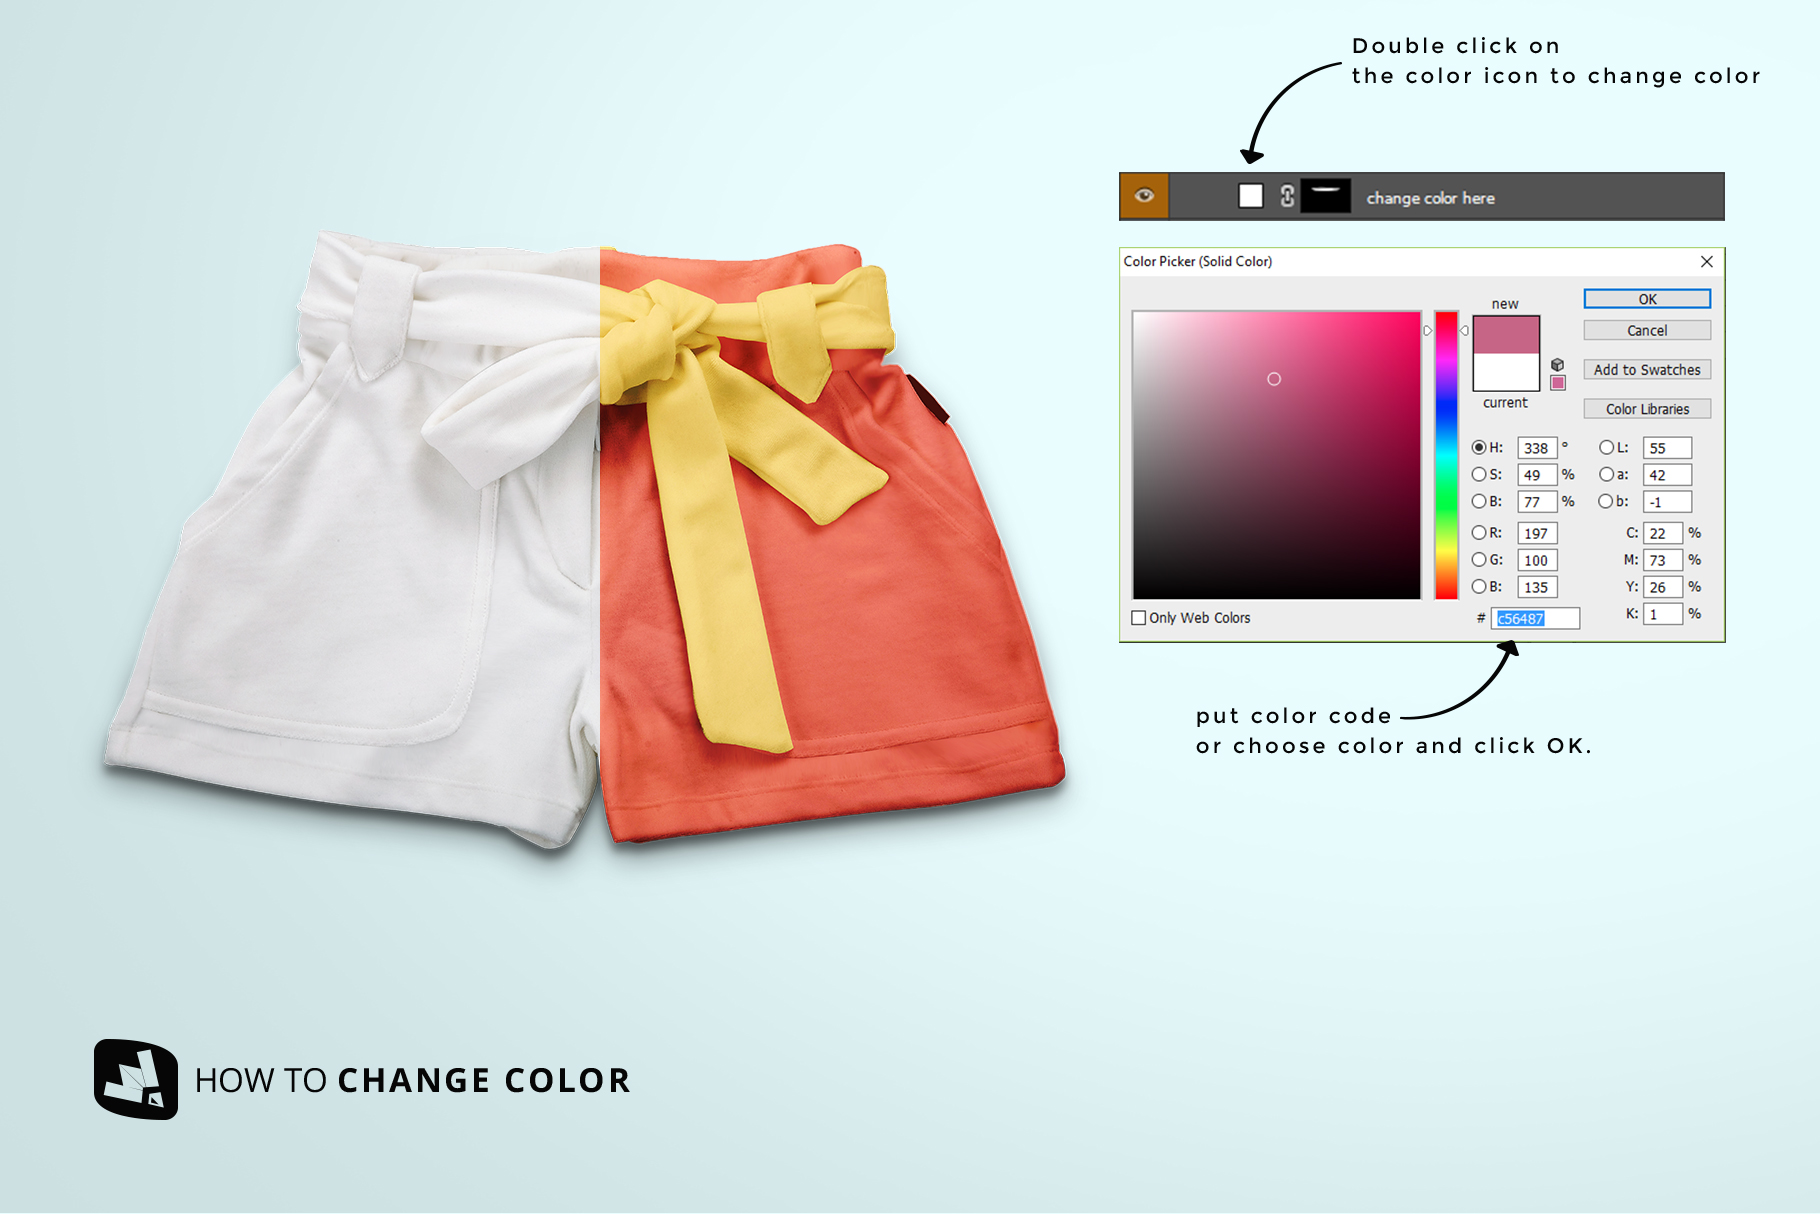 how to change color of the women's fancy short pants mockup